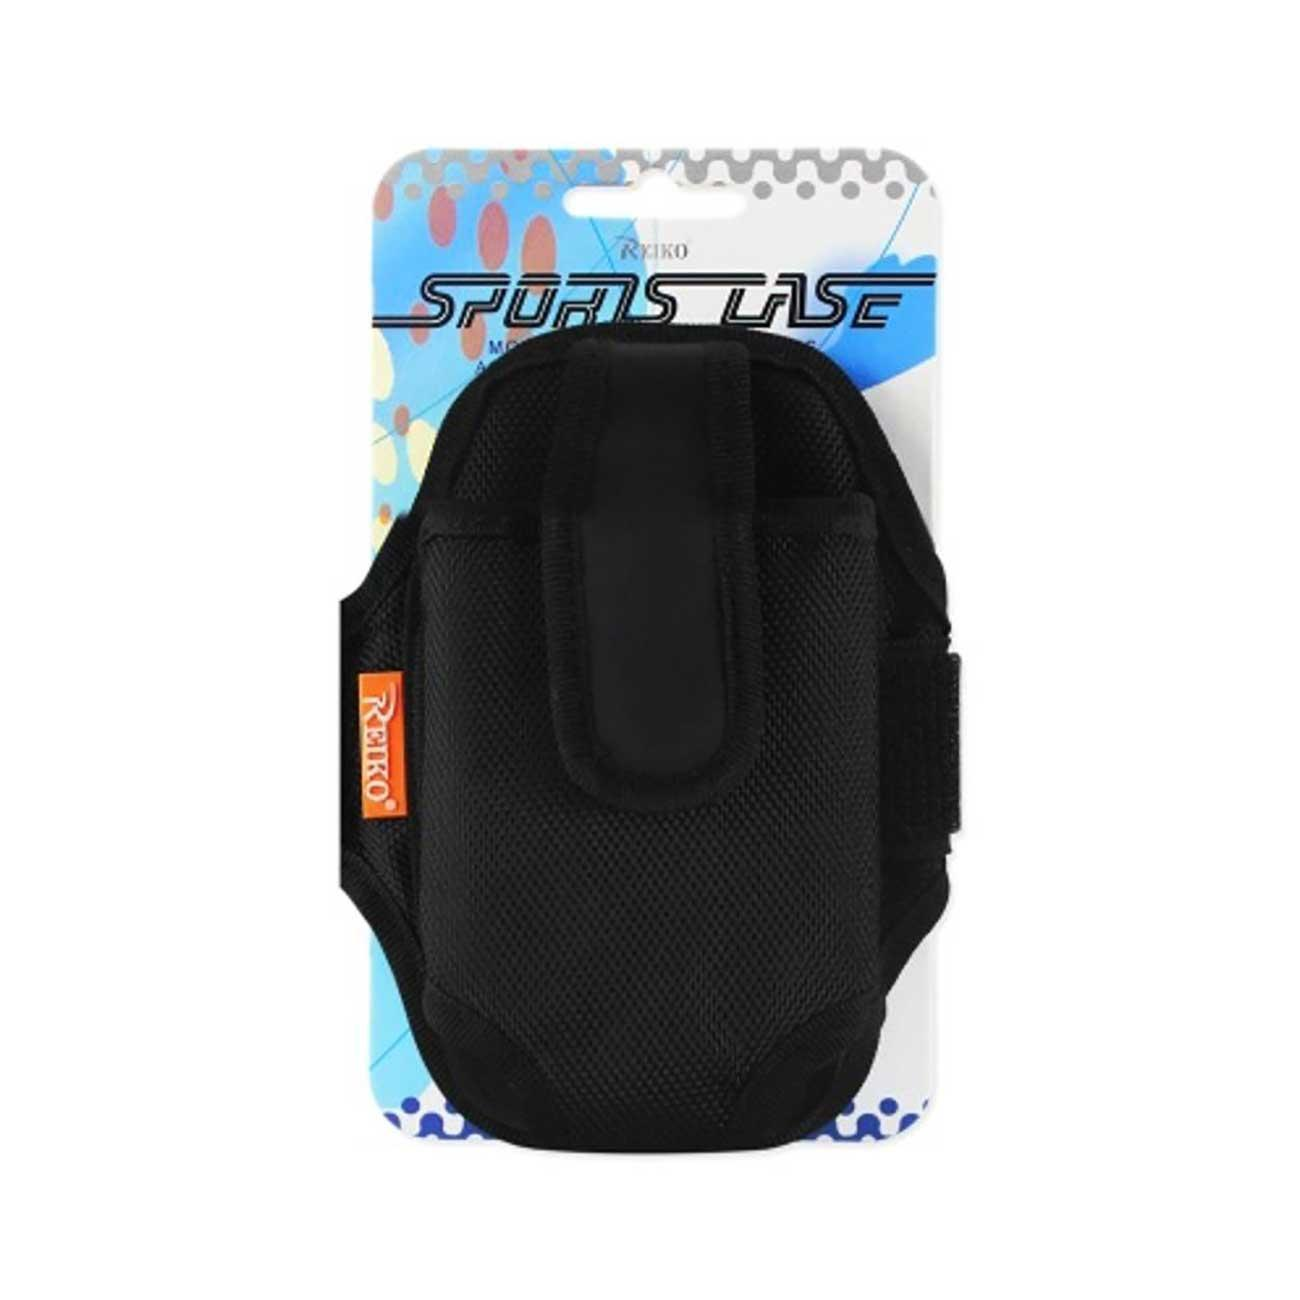 Reiko Sports Running Case 5.98x3.2x0.43 Inches (fits Phone W-o. Case) In Black